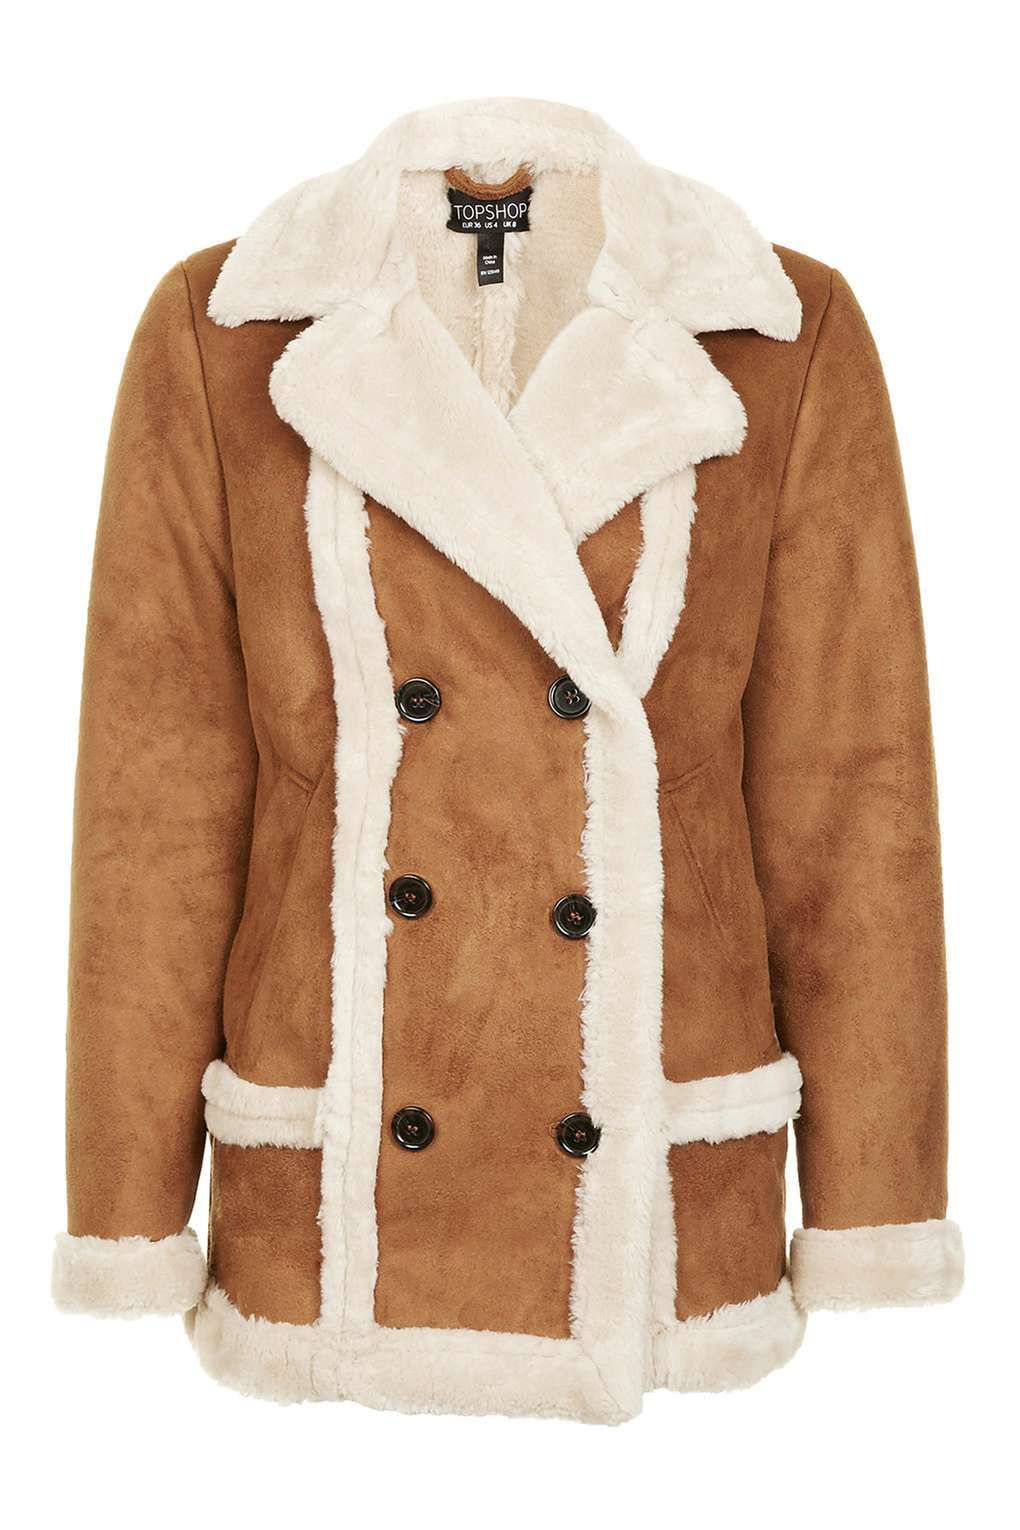 Faux Fur Shearling Jacket | Shearling jacket, Fur and Topshop